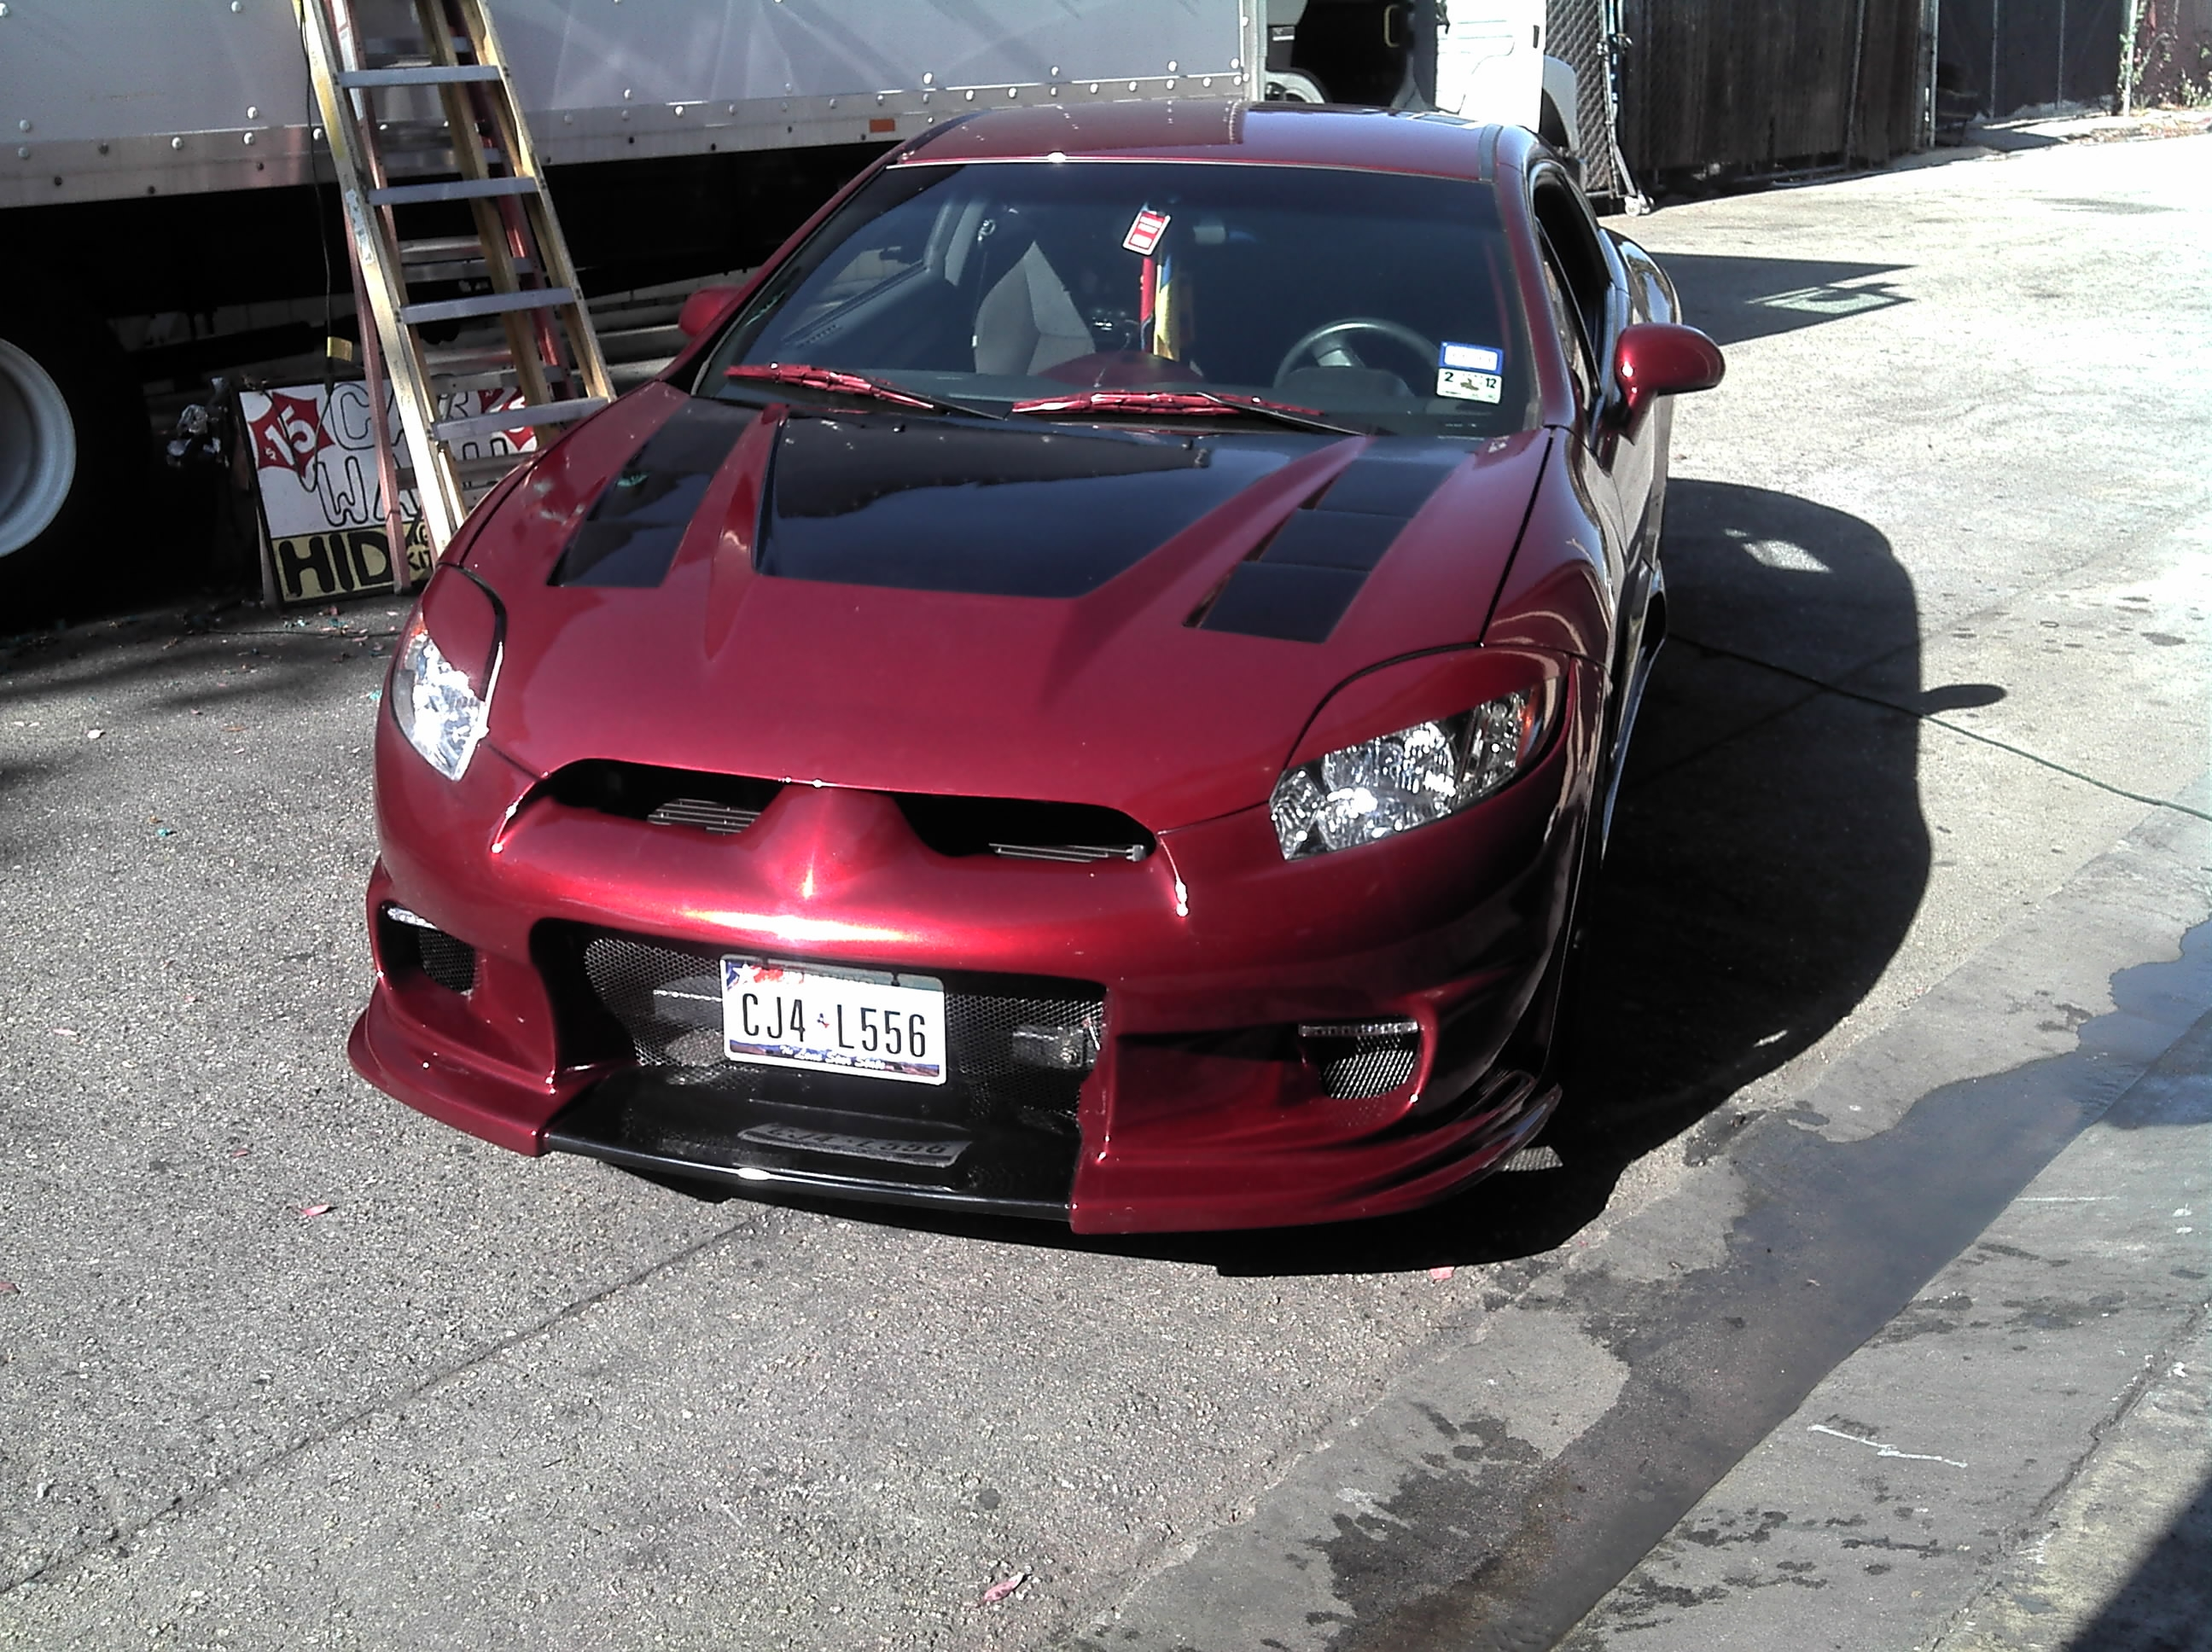 escoba 2006 mitsubishi eclipsegt hatchback coupe 3d specs photos